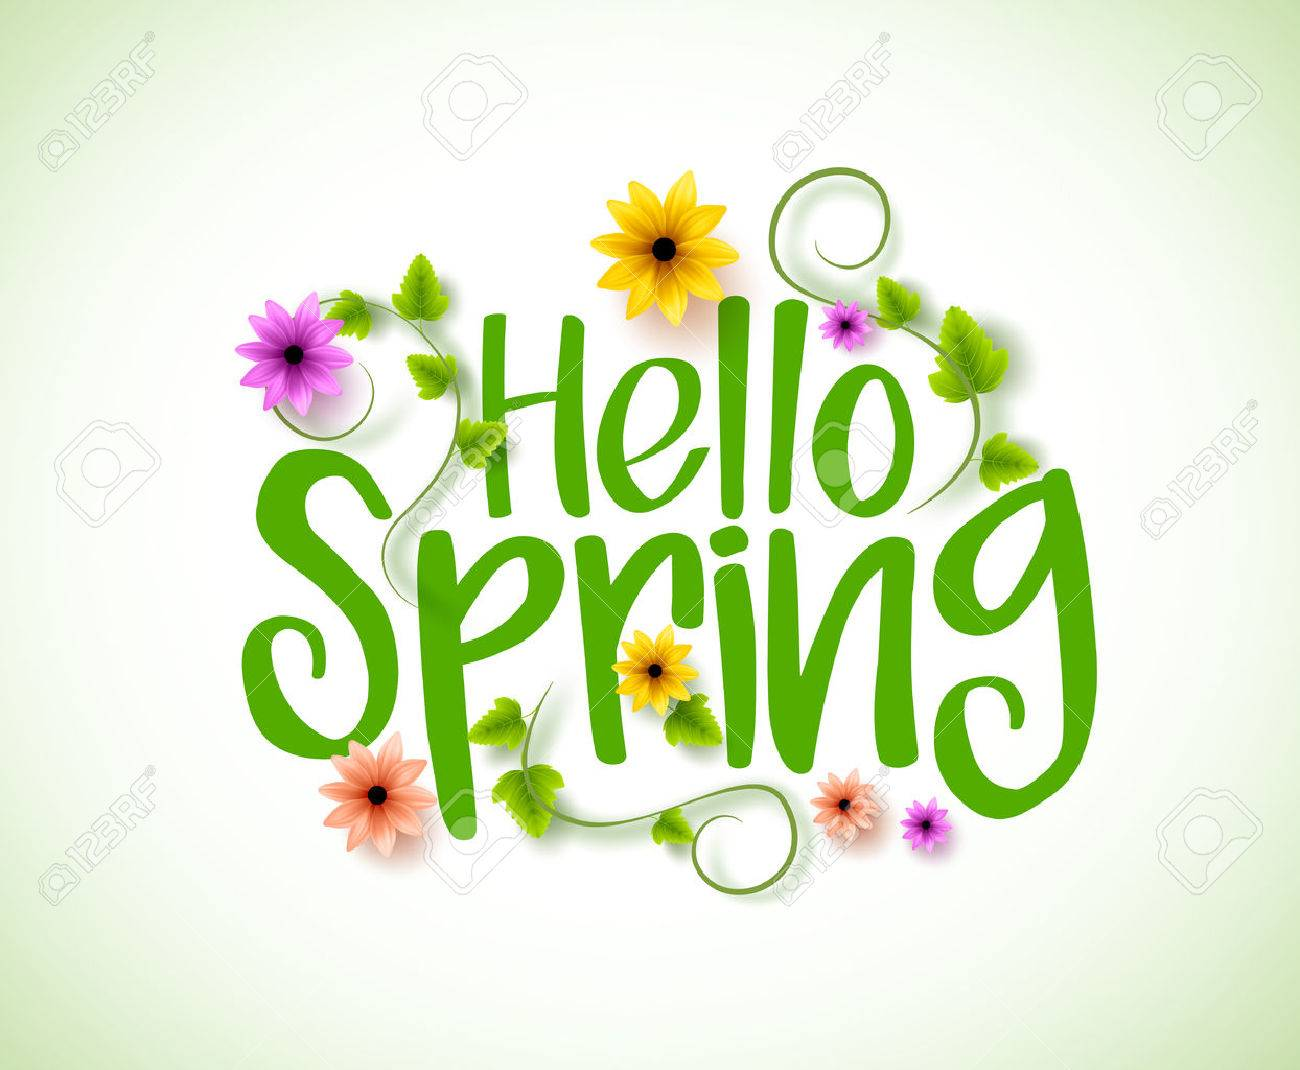 Hello Spring Vector Design with 3D Realistic Fresh Plants and Flowers Elements for Spring Season. Vector Illustration - 51701022